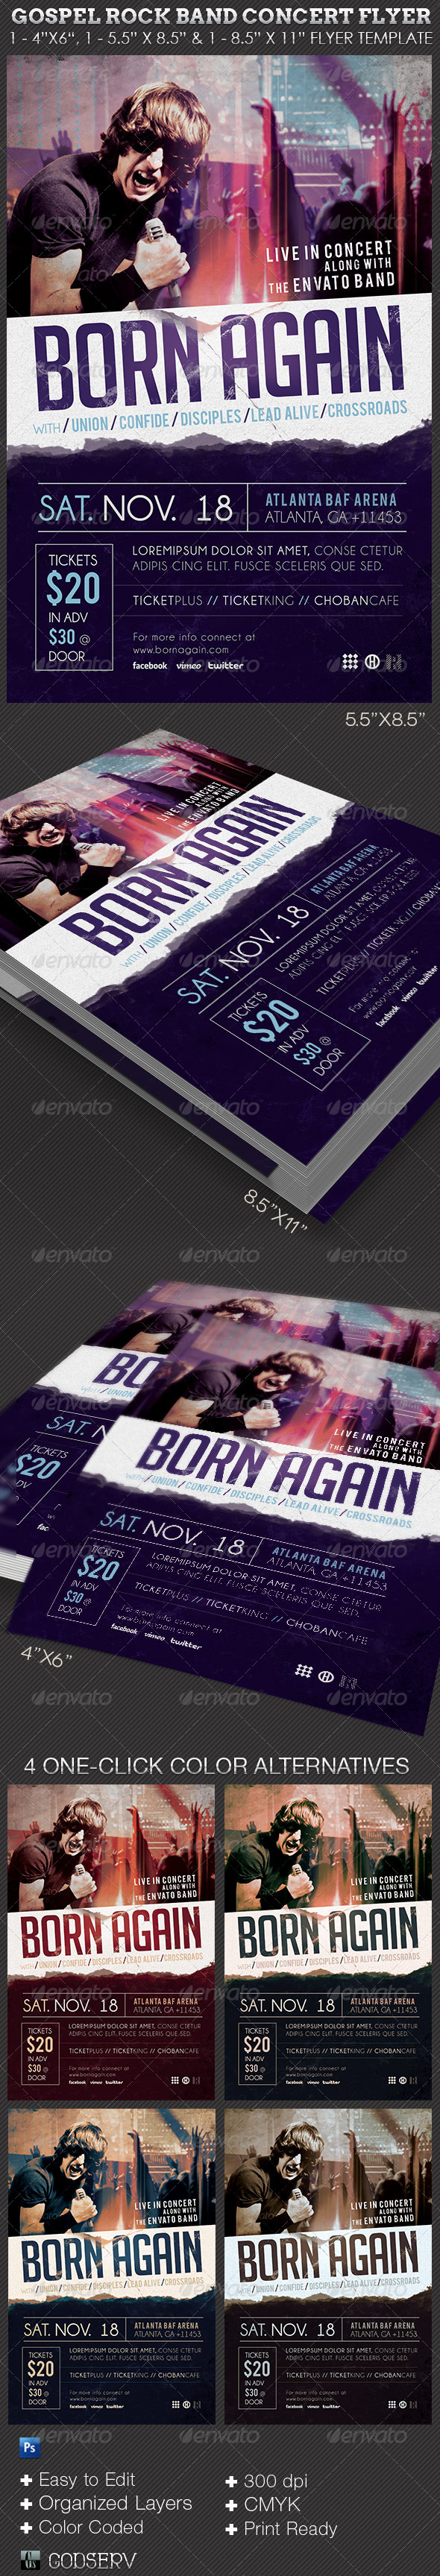 Gospel Rock Band Concert Flyer Template